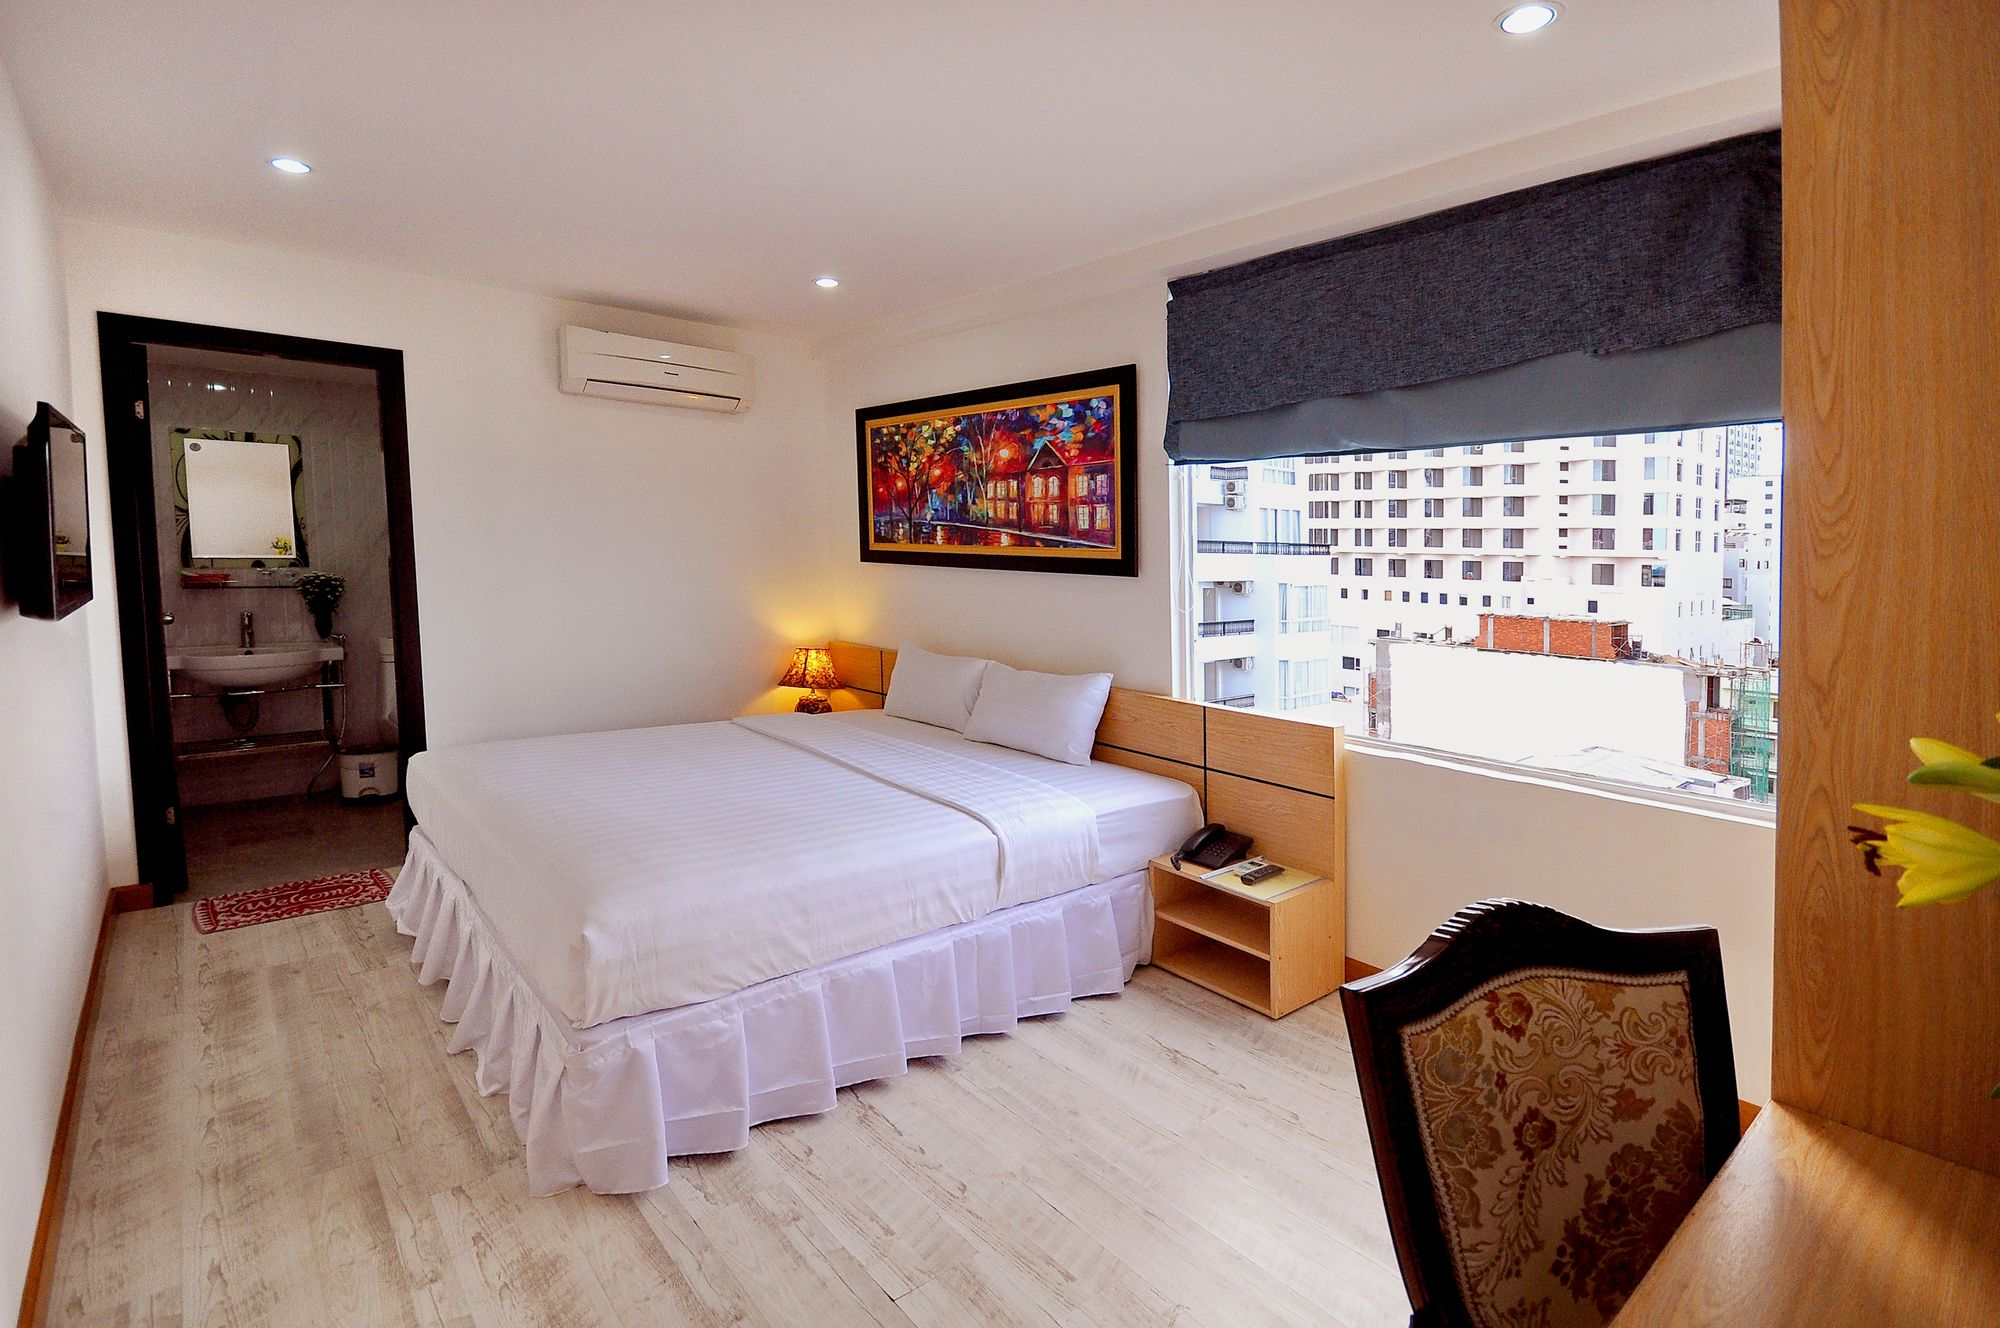 Gallery image of 101 Star Hotel